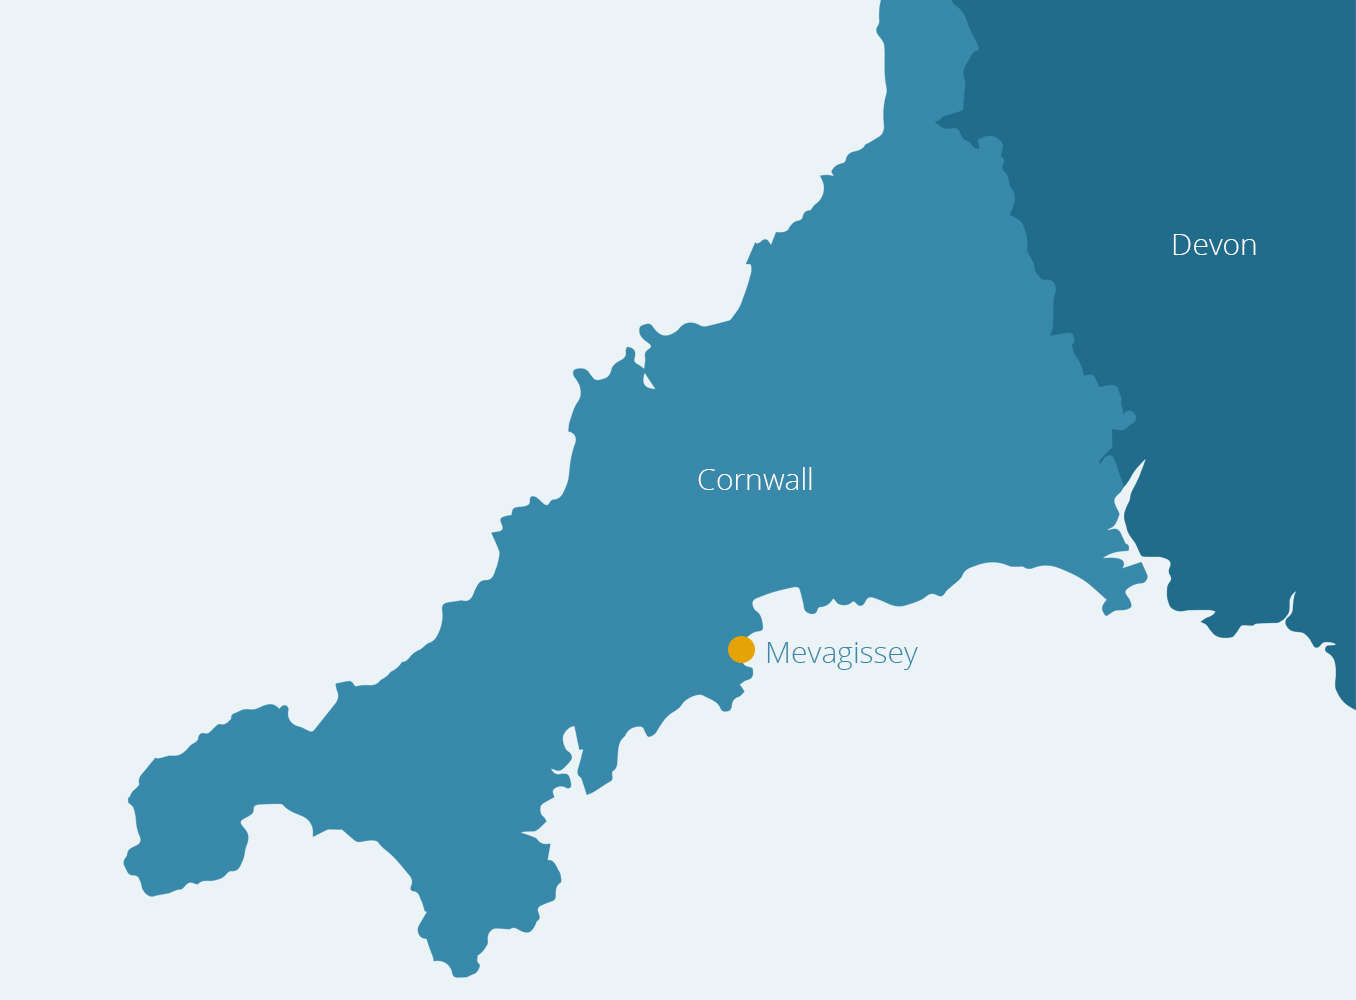 Map of Cornwall with Mevagissey marked.